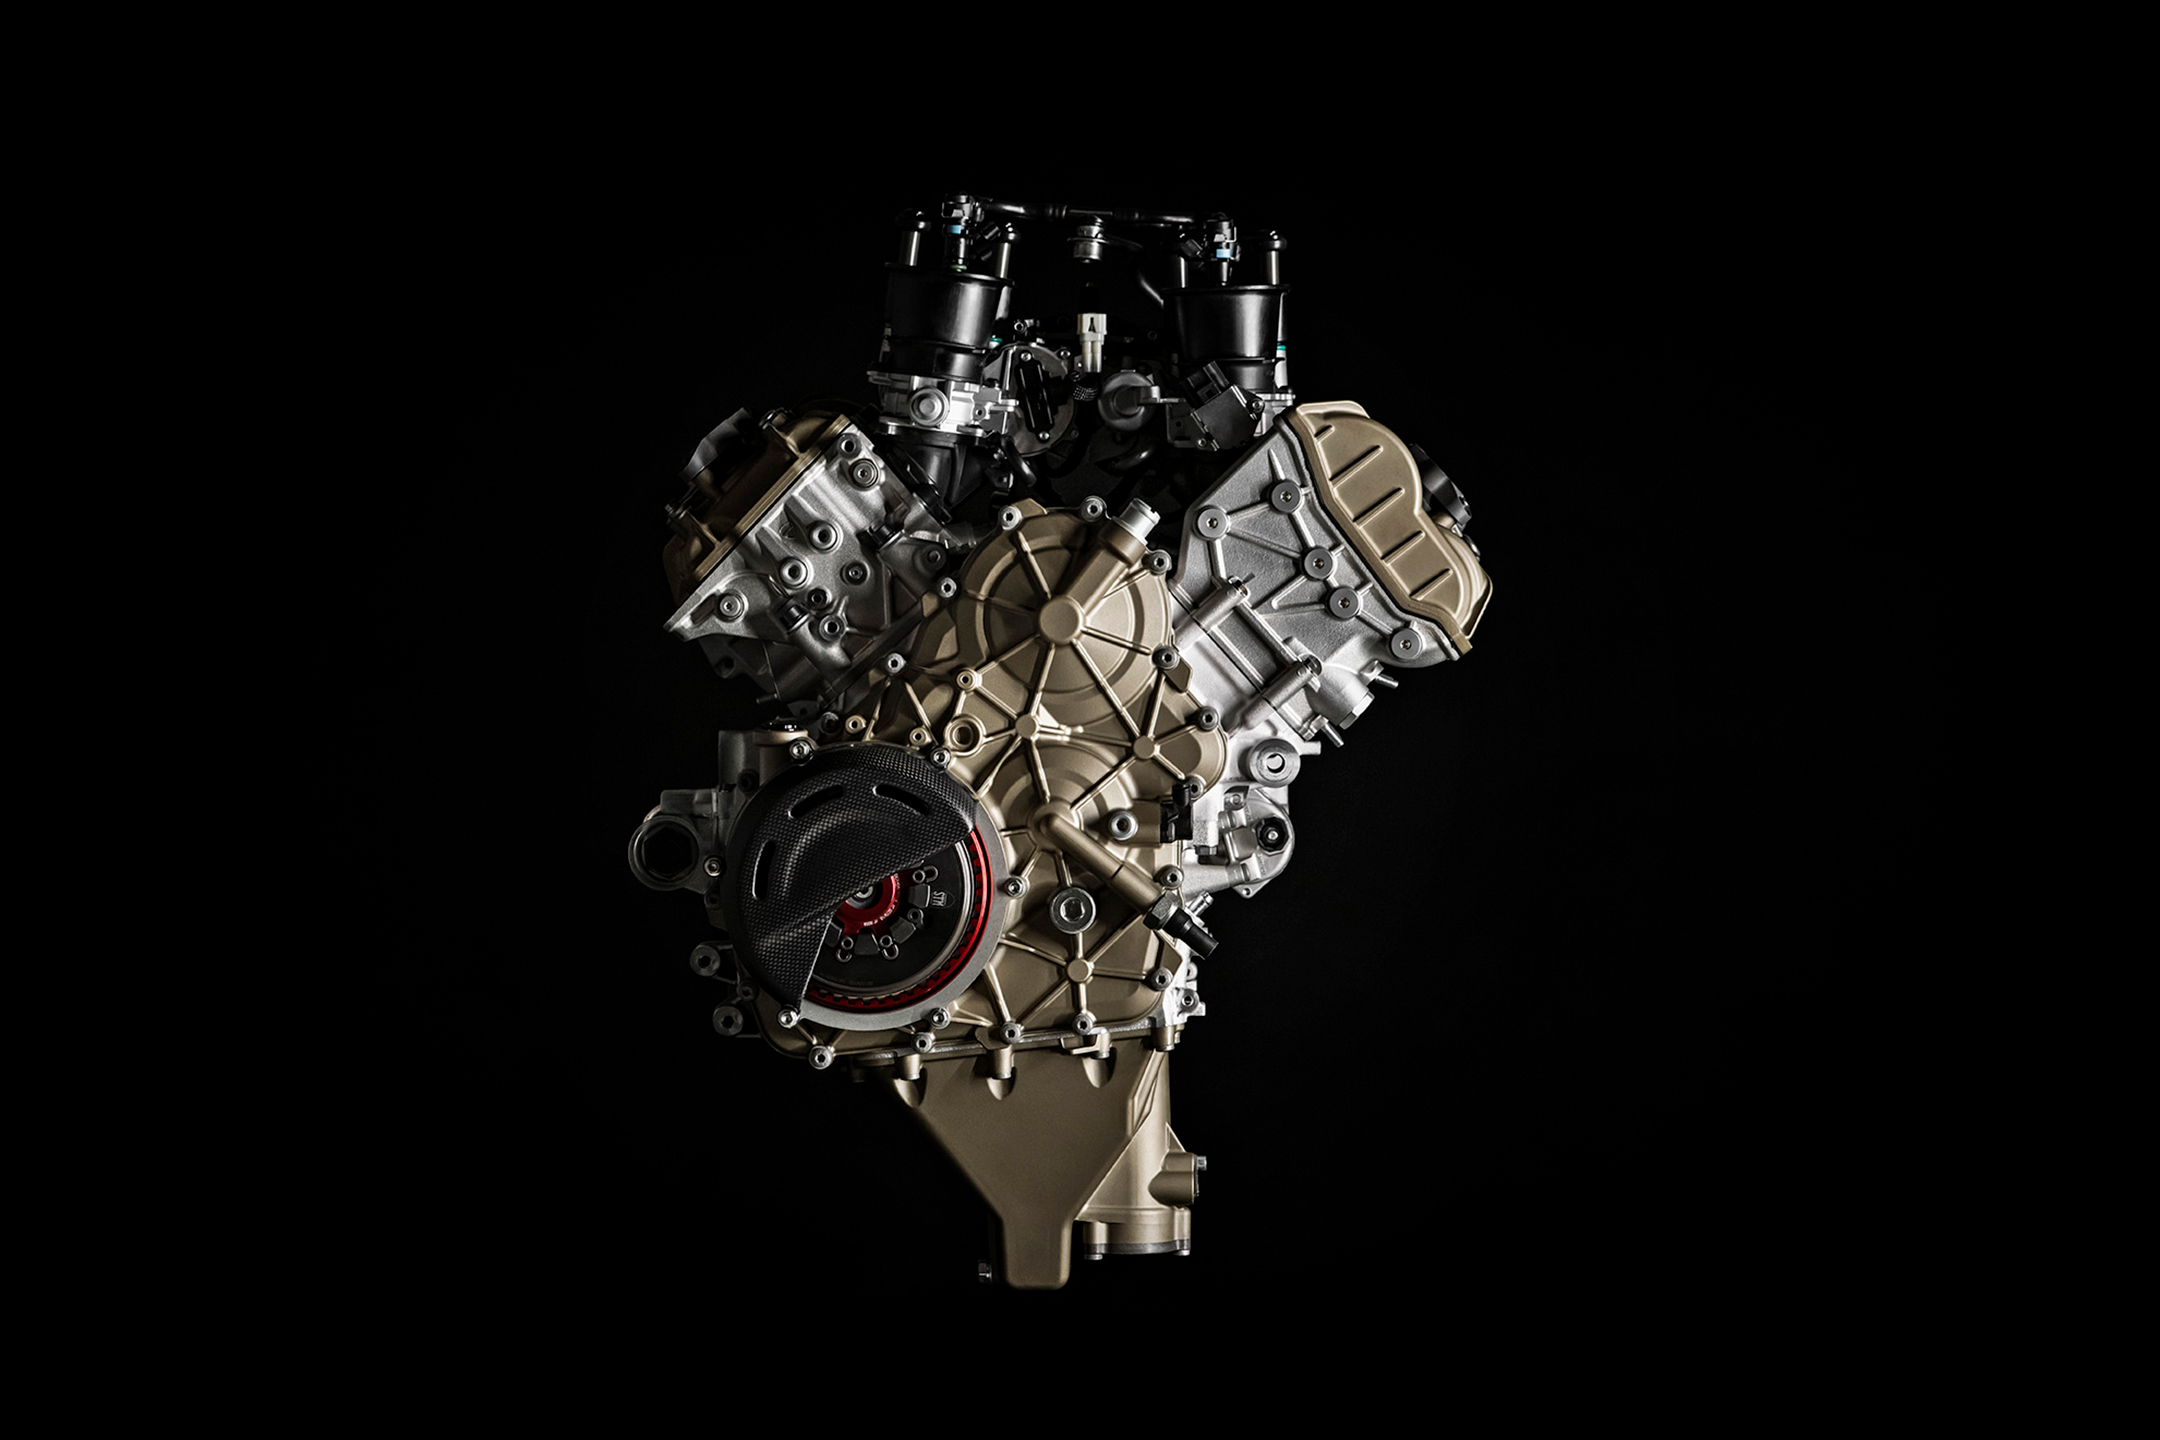 Ducati Superleggera V4 - 2020 - engine / moteur - Desmosedici V4 998cc